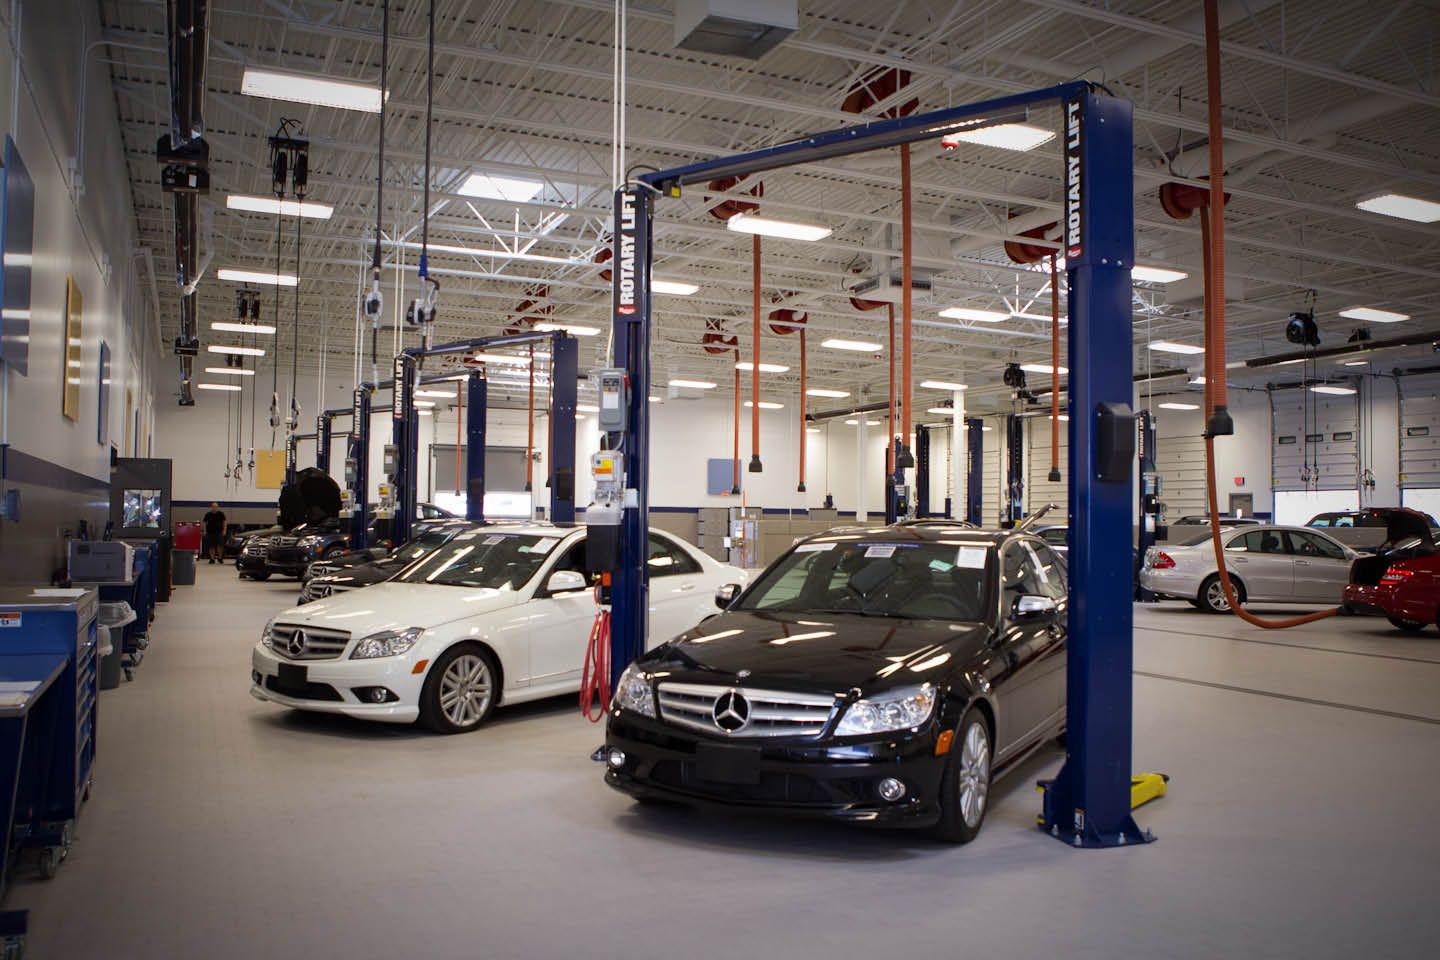 Pre-purchase Car Inspection, General Car Maintenance, Mechanical Breakdowns, check Engine Light, Tires and Wheel Alignment & Additional Services; leesburg, va